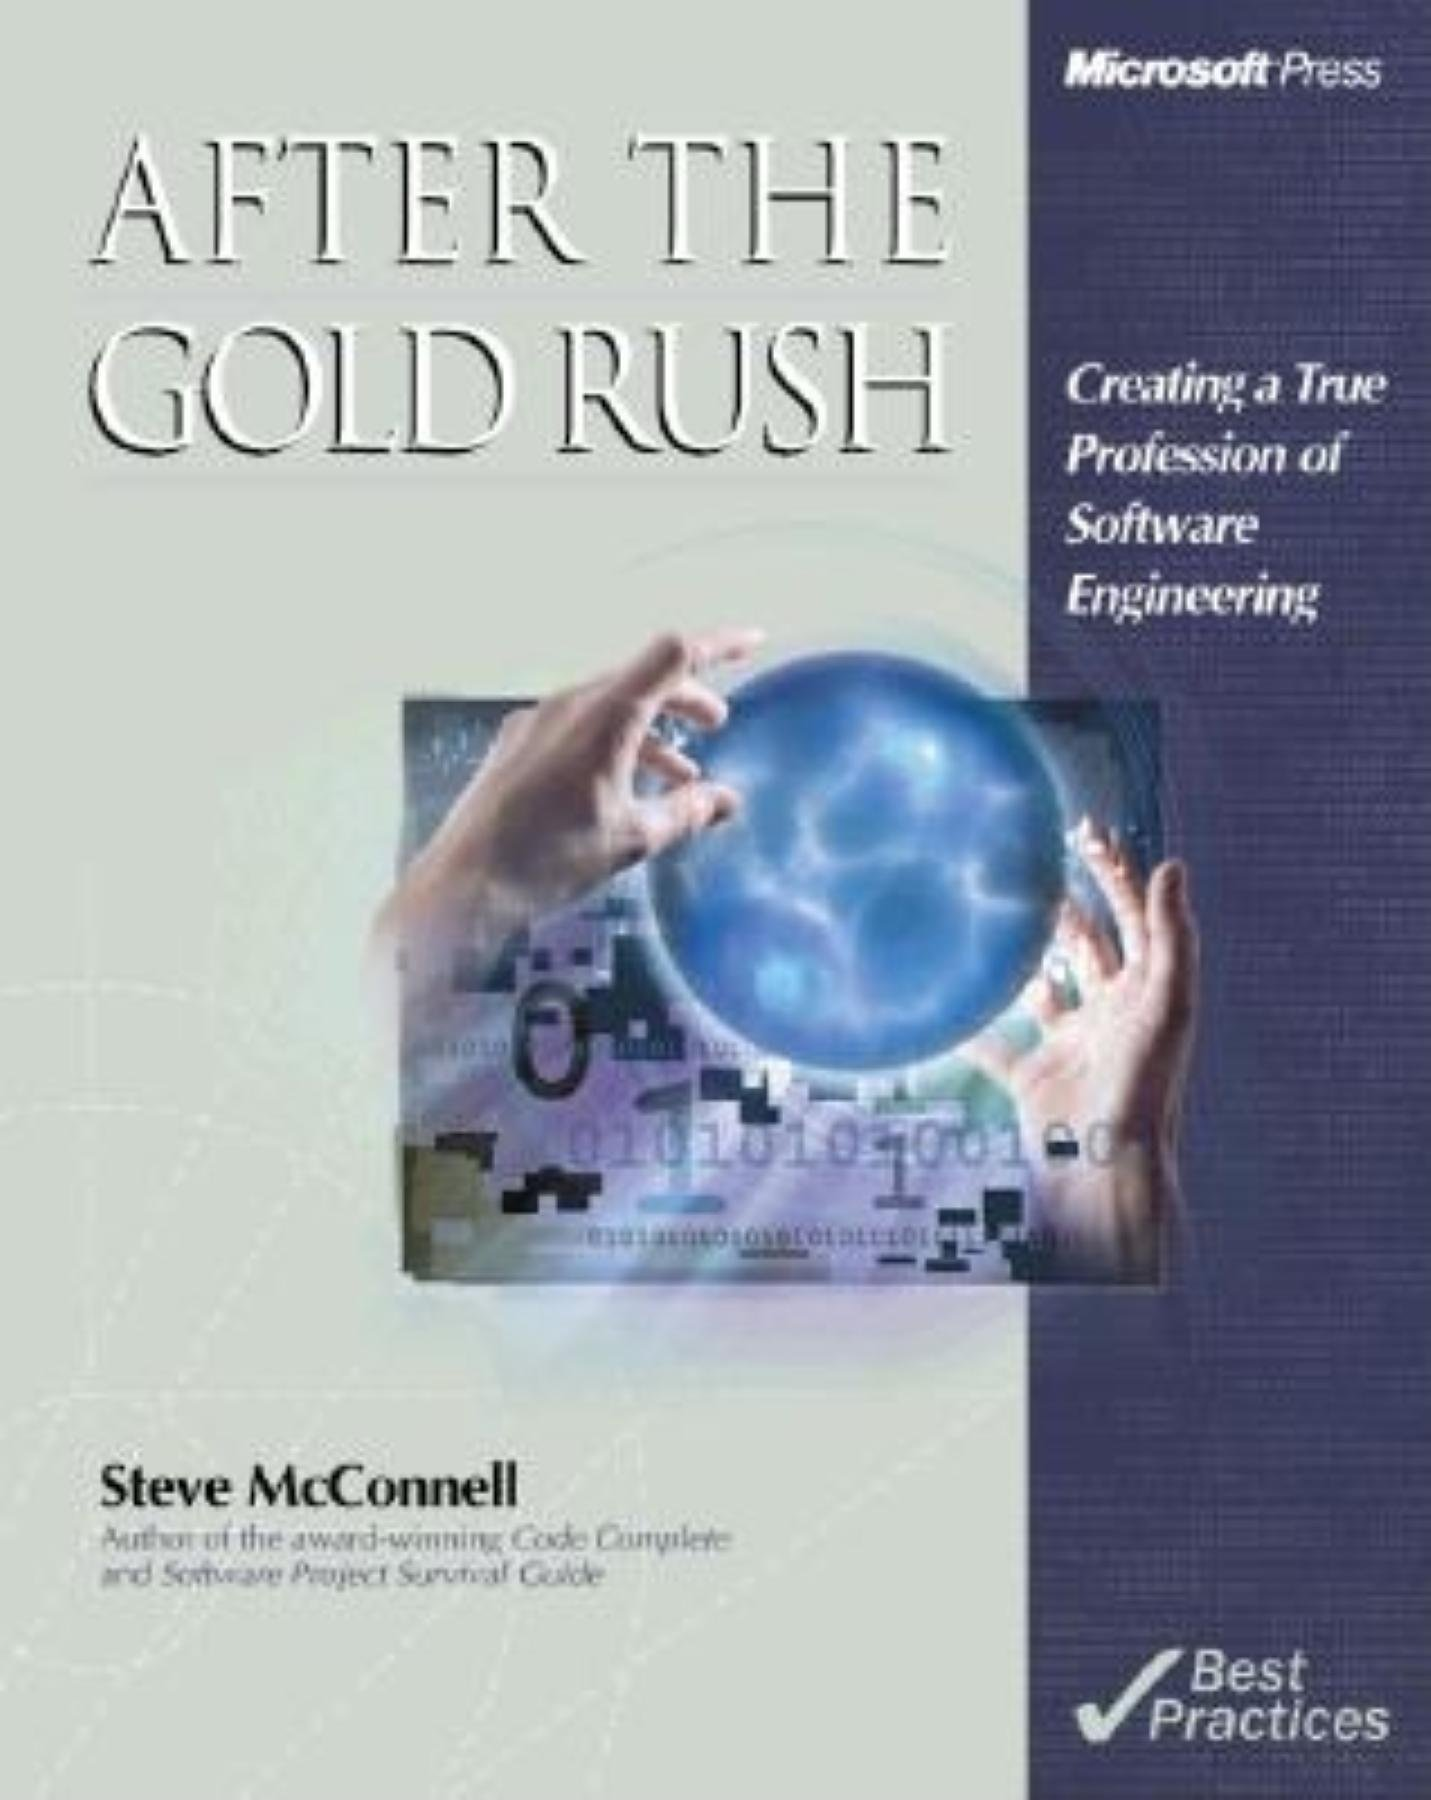 After the Gold Rush: Creating a True Profession of Software Engineering (DV-Best Practices) by Microsoft Press